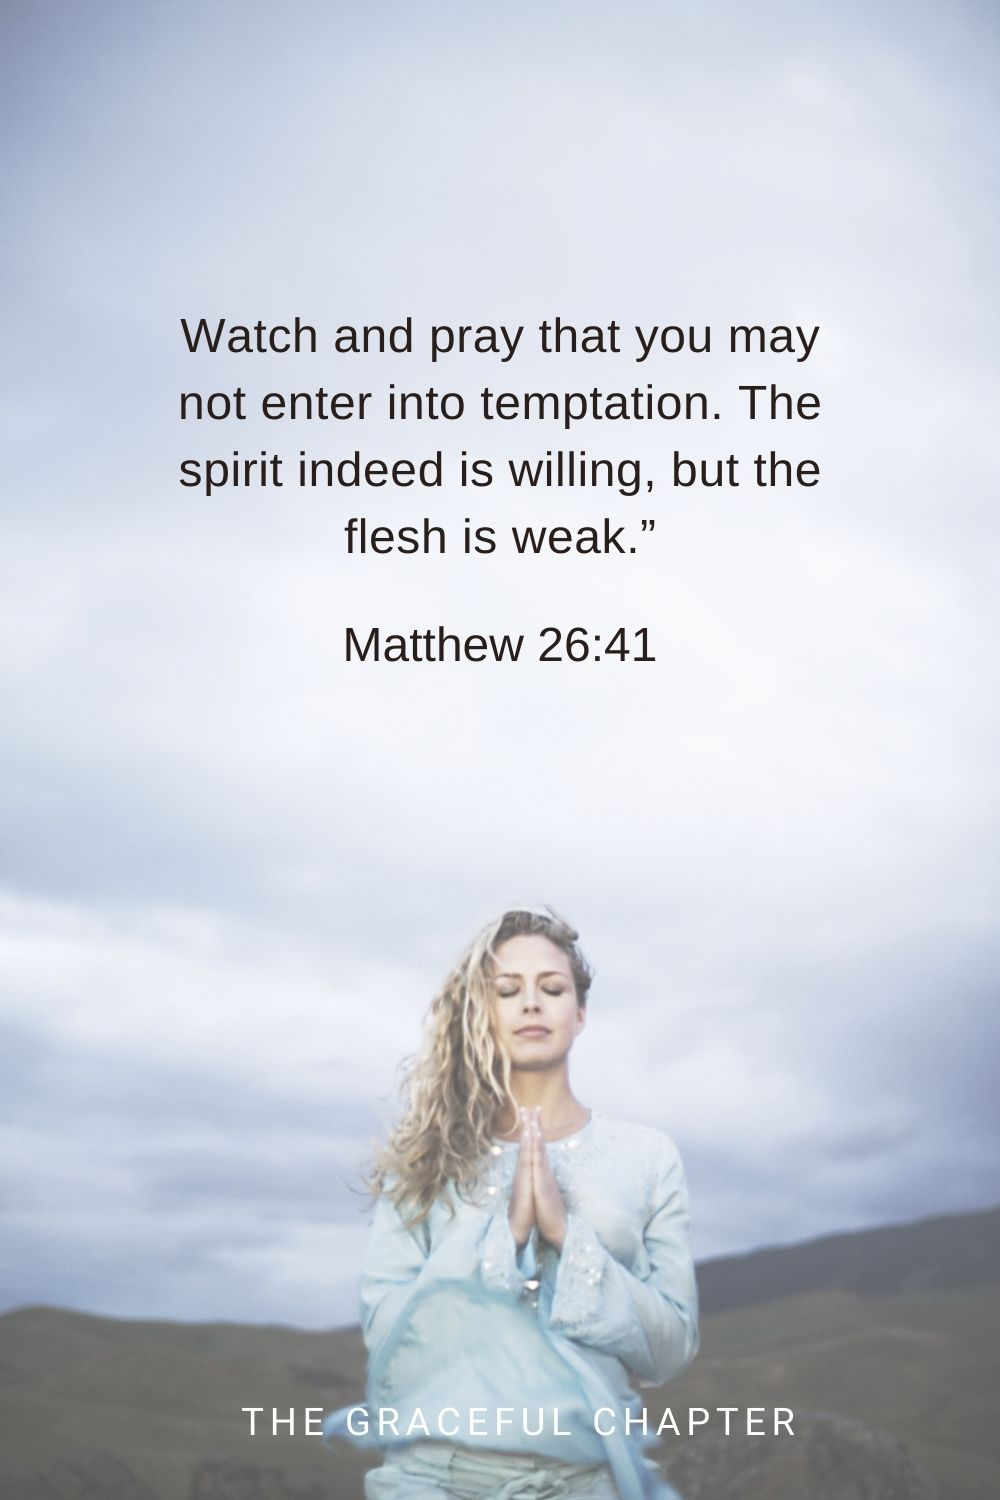 """Watch and pray that you may not enter into temptation. The spirit indeed is willing, but the flesh is weak."""" Matthew 26:41"""